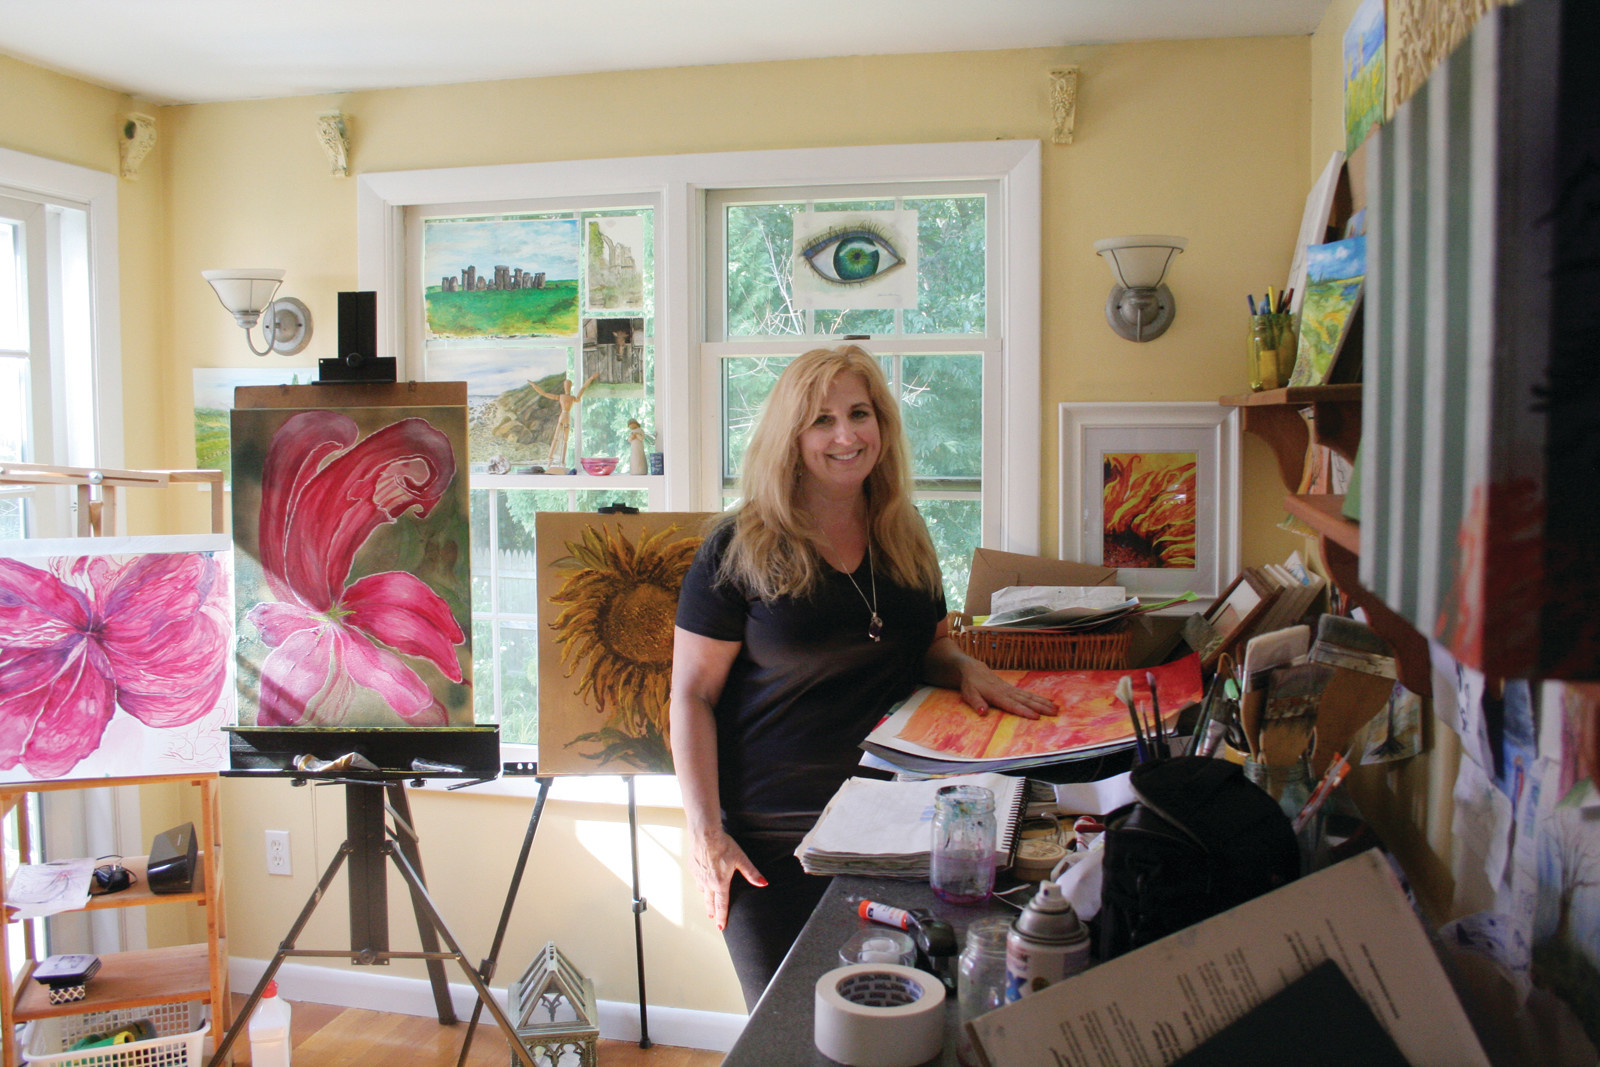 PAINTINGS THAT TRANSPORT: Patricia Almonte at her home studio in Hoxsie.